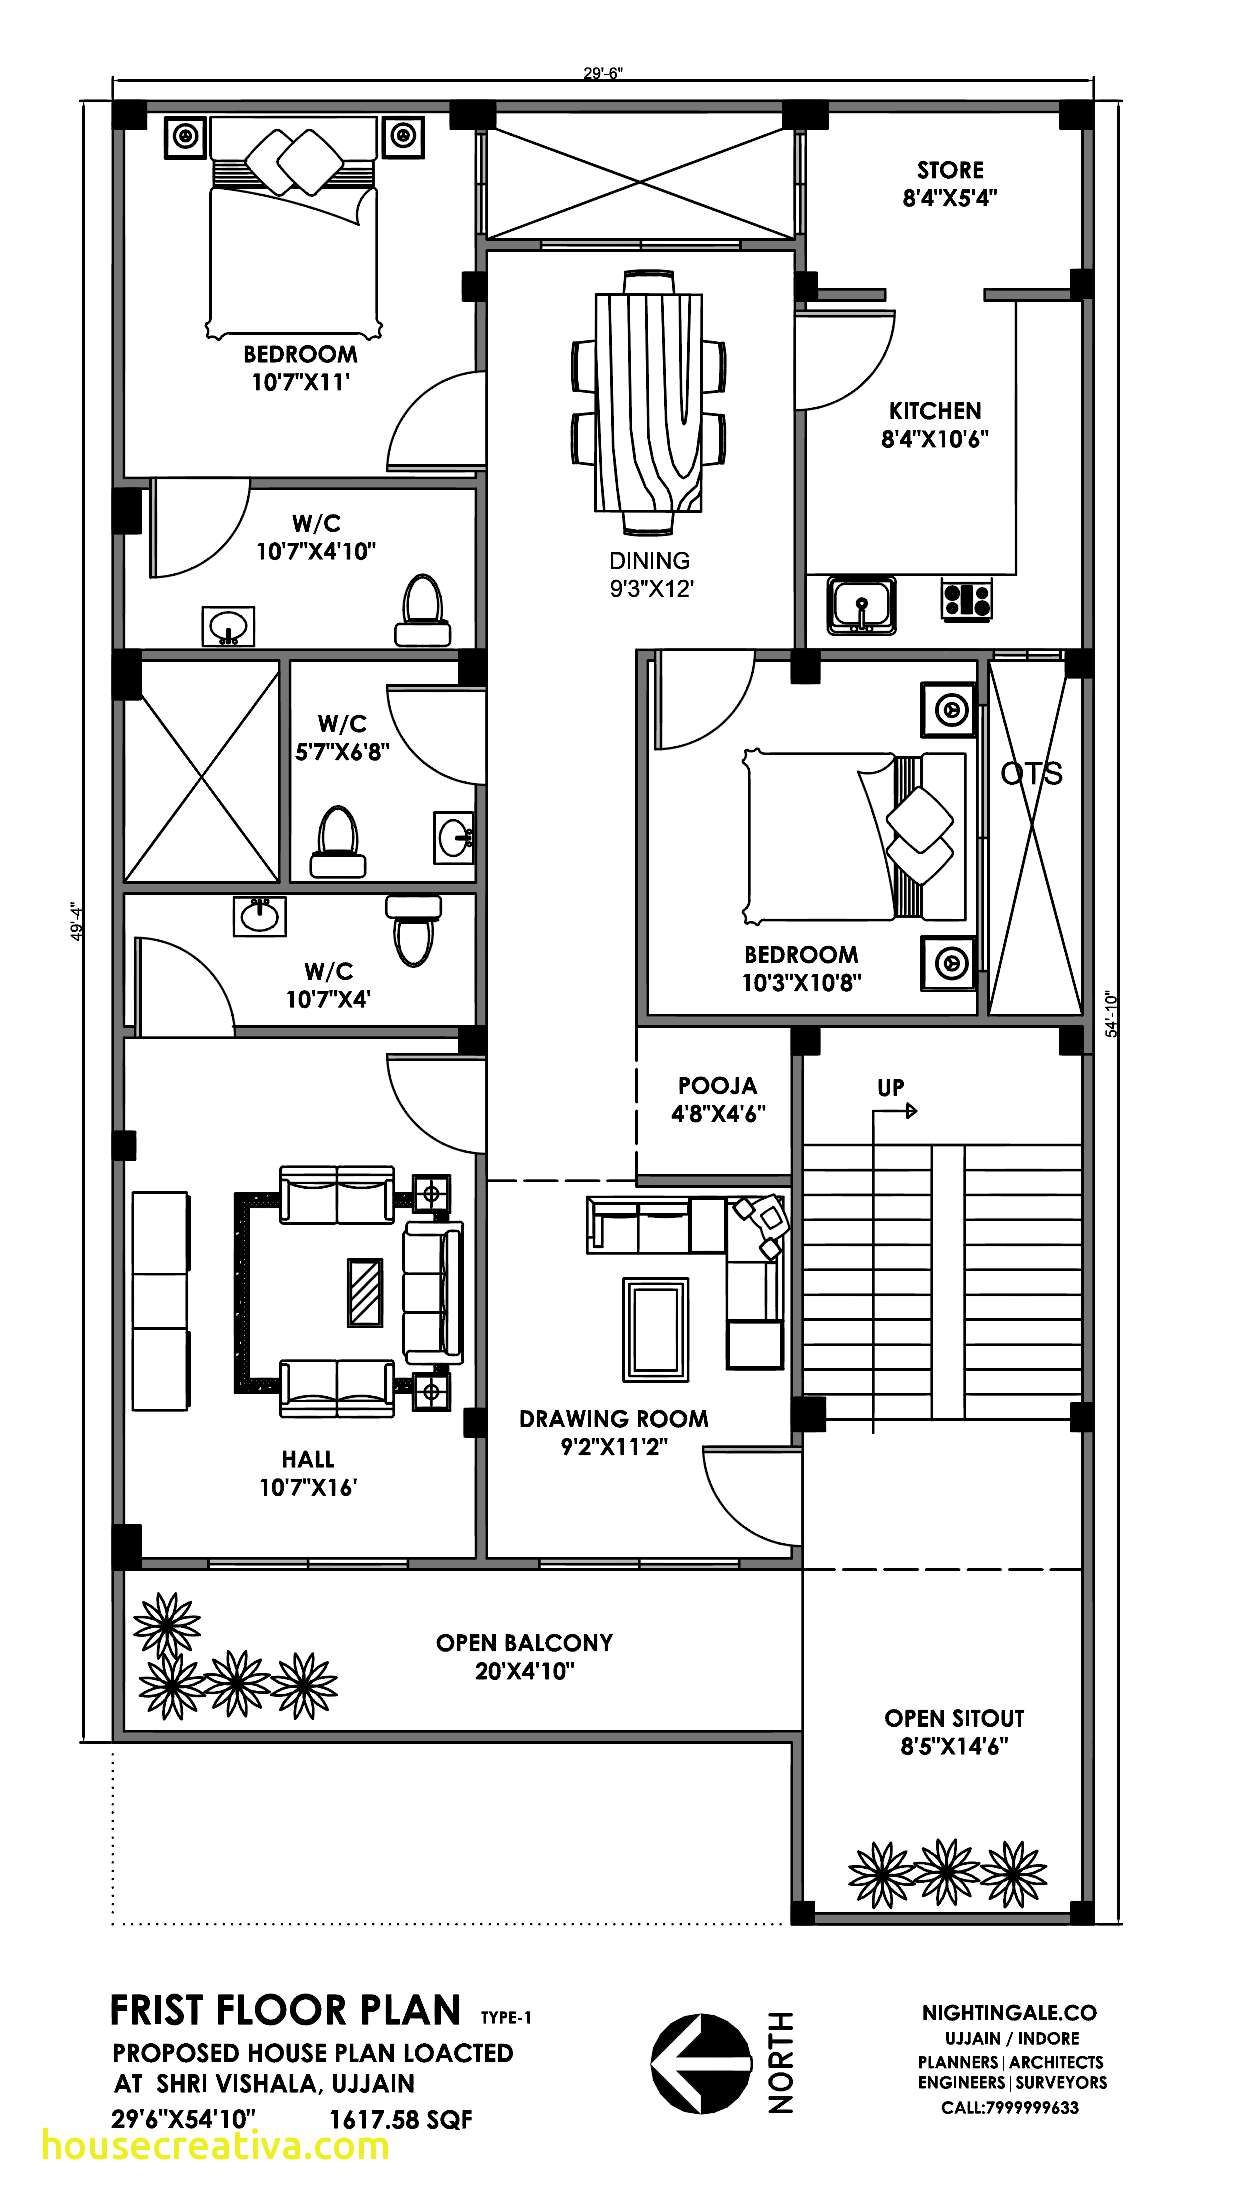 30x50 3bhk House Plan 1500sqft Little House Plans 40x60 House Plans House Plans